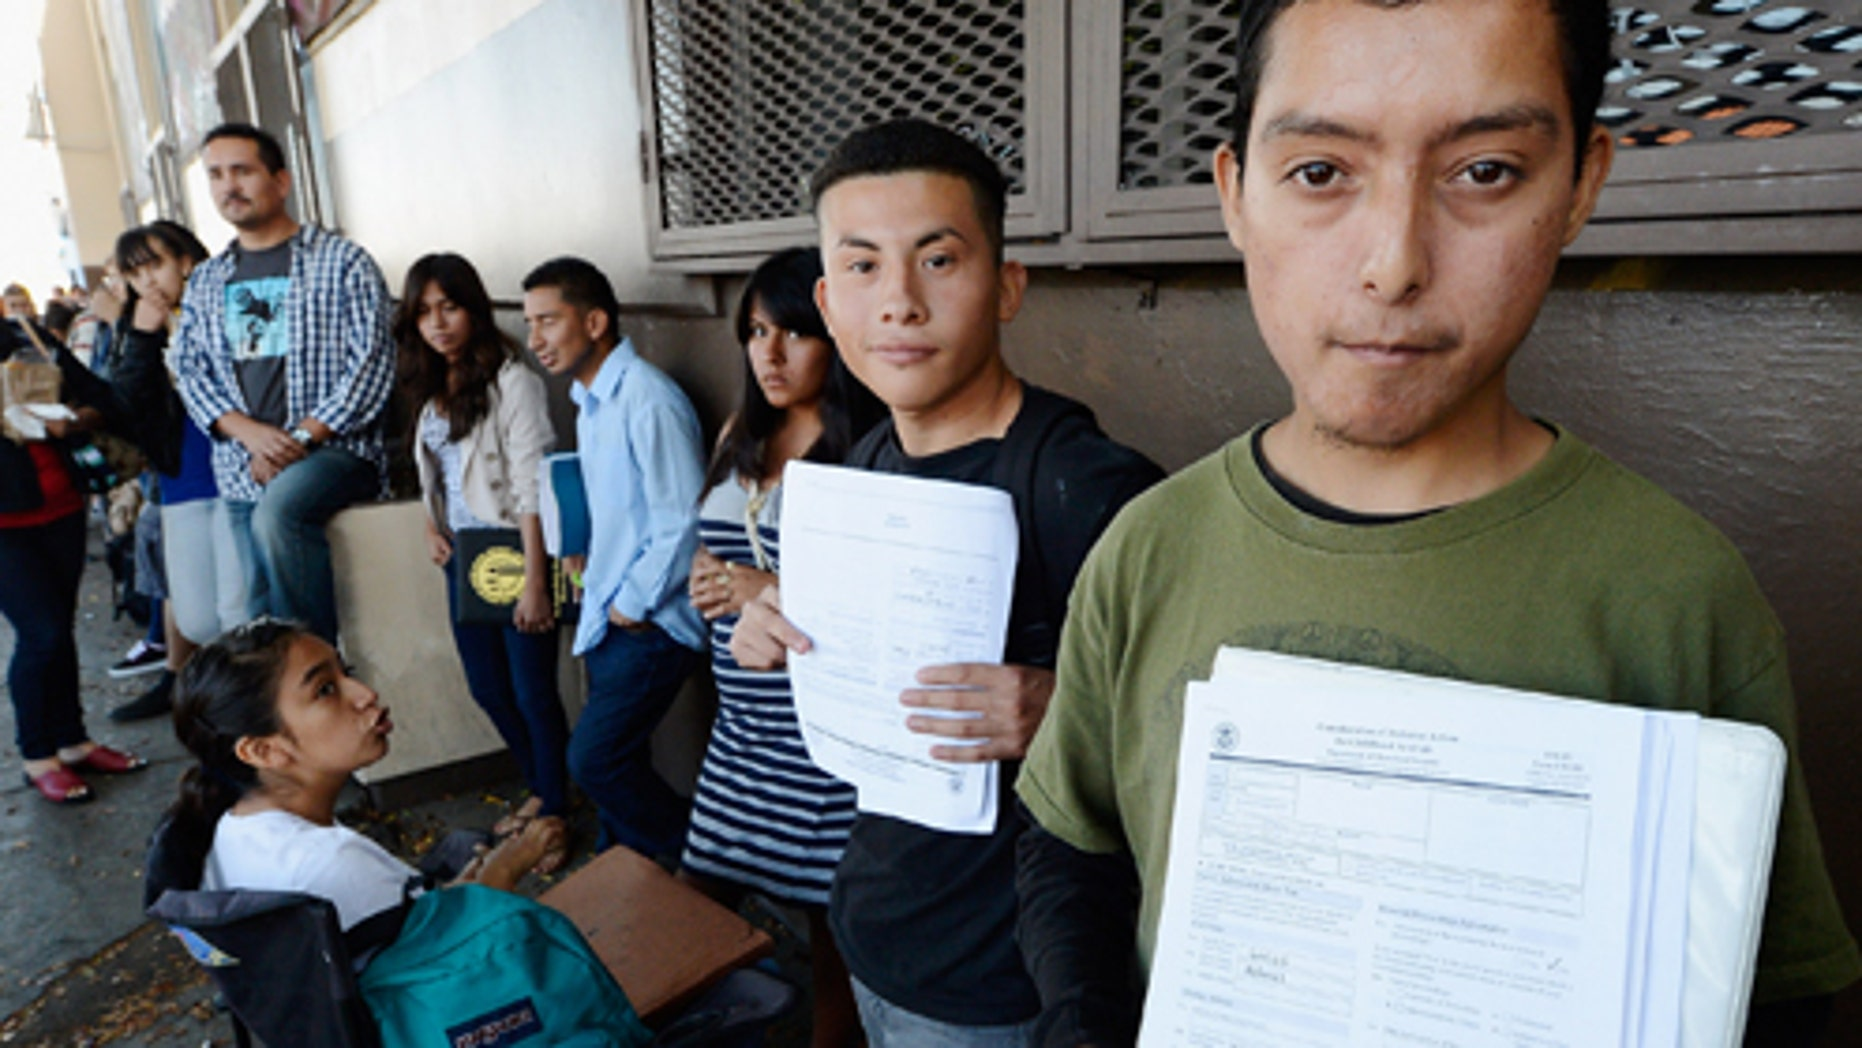 LOS ANGELES, CA - AUGUST 15: Roberto Larios, 21, (R) holds Deferred Action for Childhood Arrival application as he waits in line with hundreds of fellow undocumanted immigrants at the Coalition for Humane Immigrant Rights of Los Angeles offices to apply for deportation reprieve on August 15, 2012 in Los Angeles, California. Under a new program established by the Obama administration undocumented youth who qualify for the program, called Deferred Action for Childhood Arrivals, can file applications from the U.S. Citizenship and Immigration Services website to avoid deportation and obtain the right to work  (Photo by Kevork Djansezian/Getty Images)